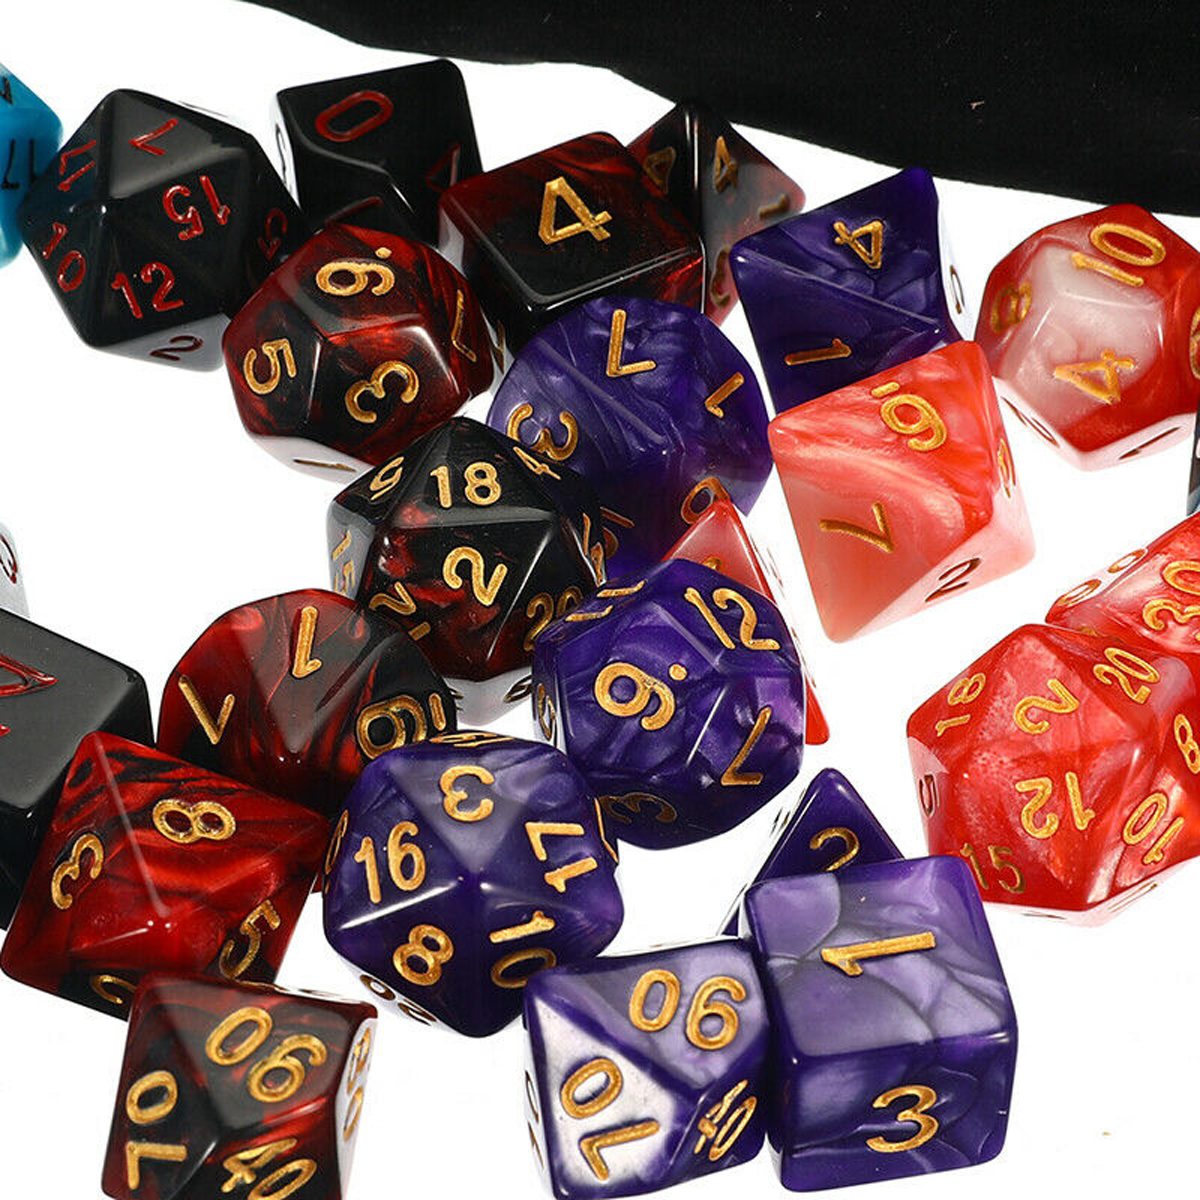 105 Pcs Dice Set Polyhedral Dices 7 Color Role Playing Table Game With Cloth Game Multi-sied Dice